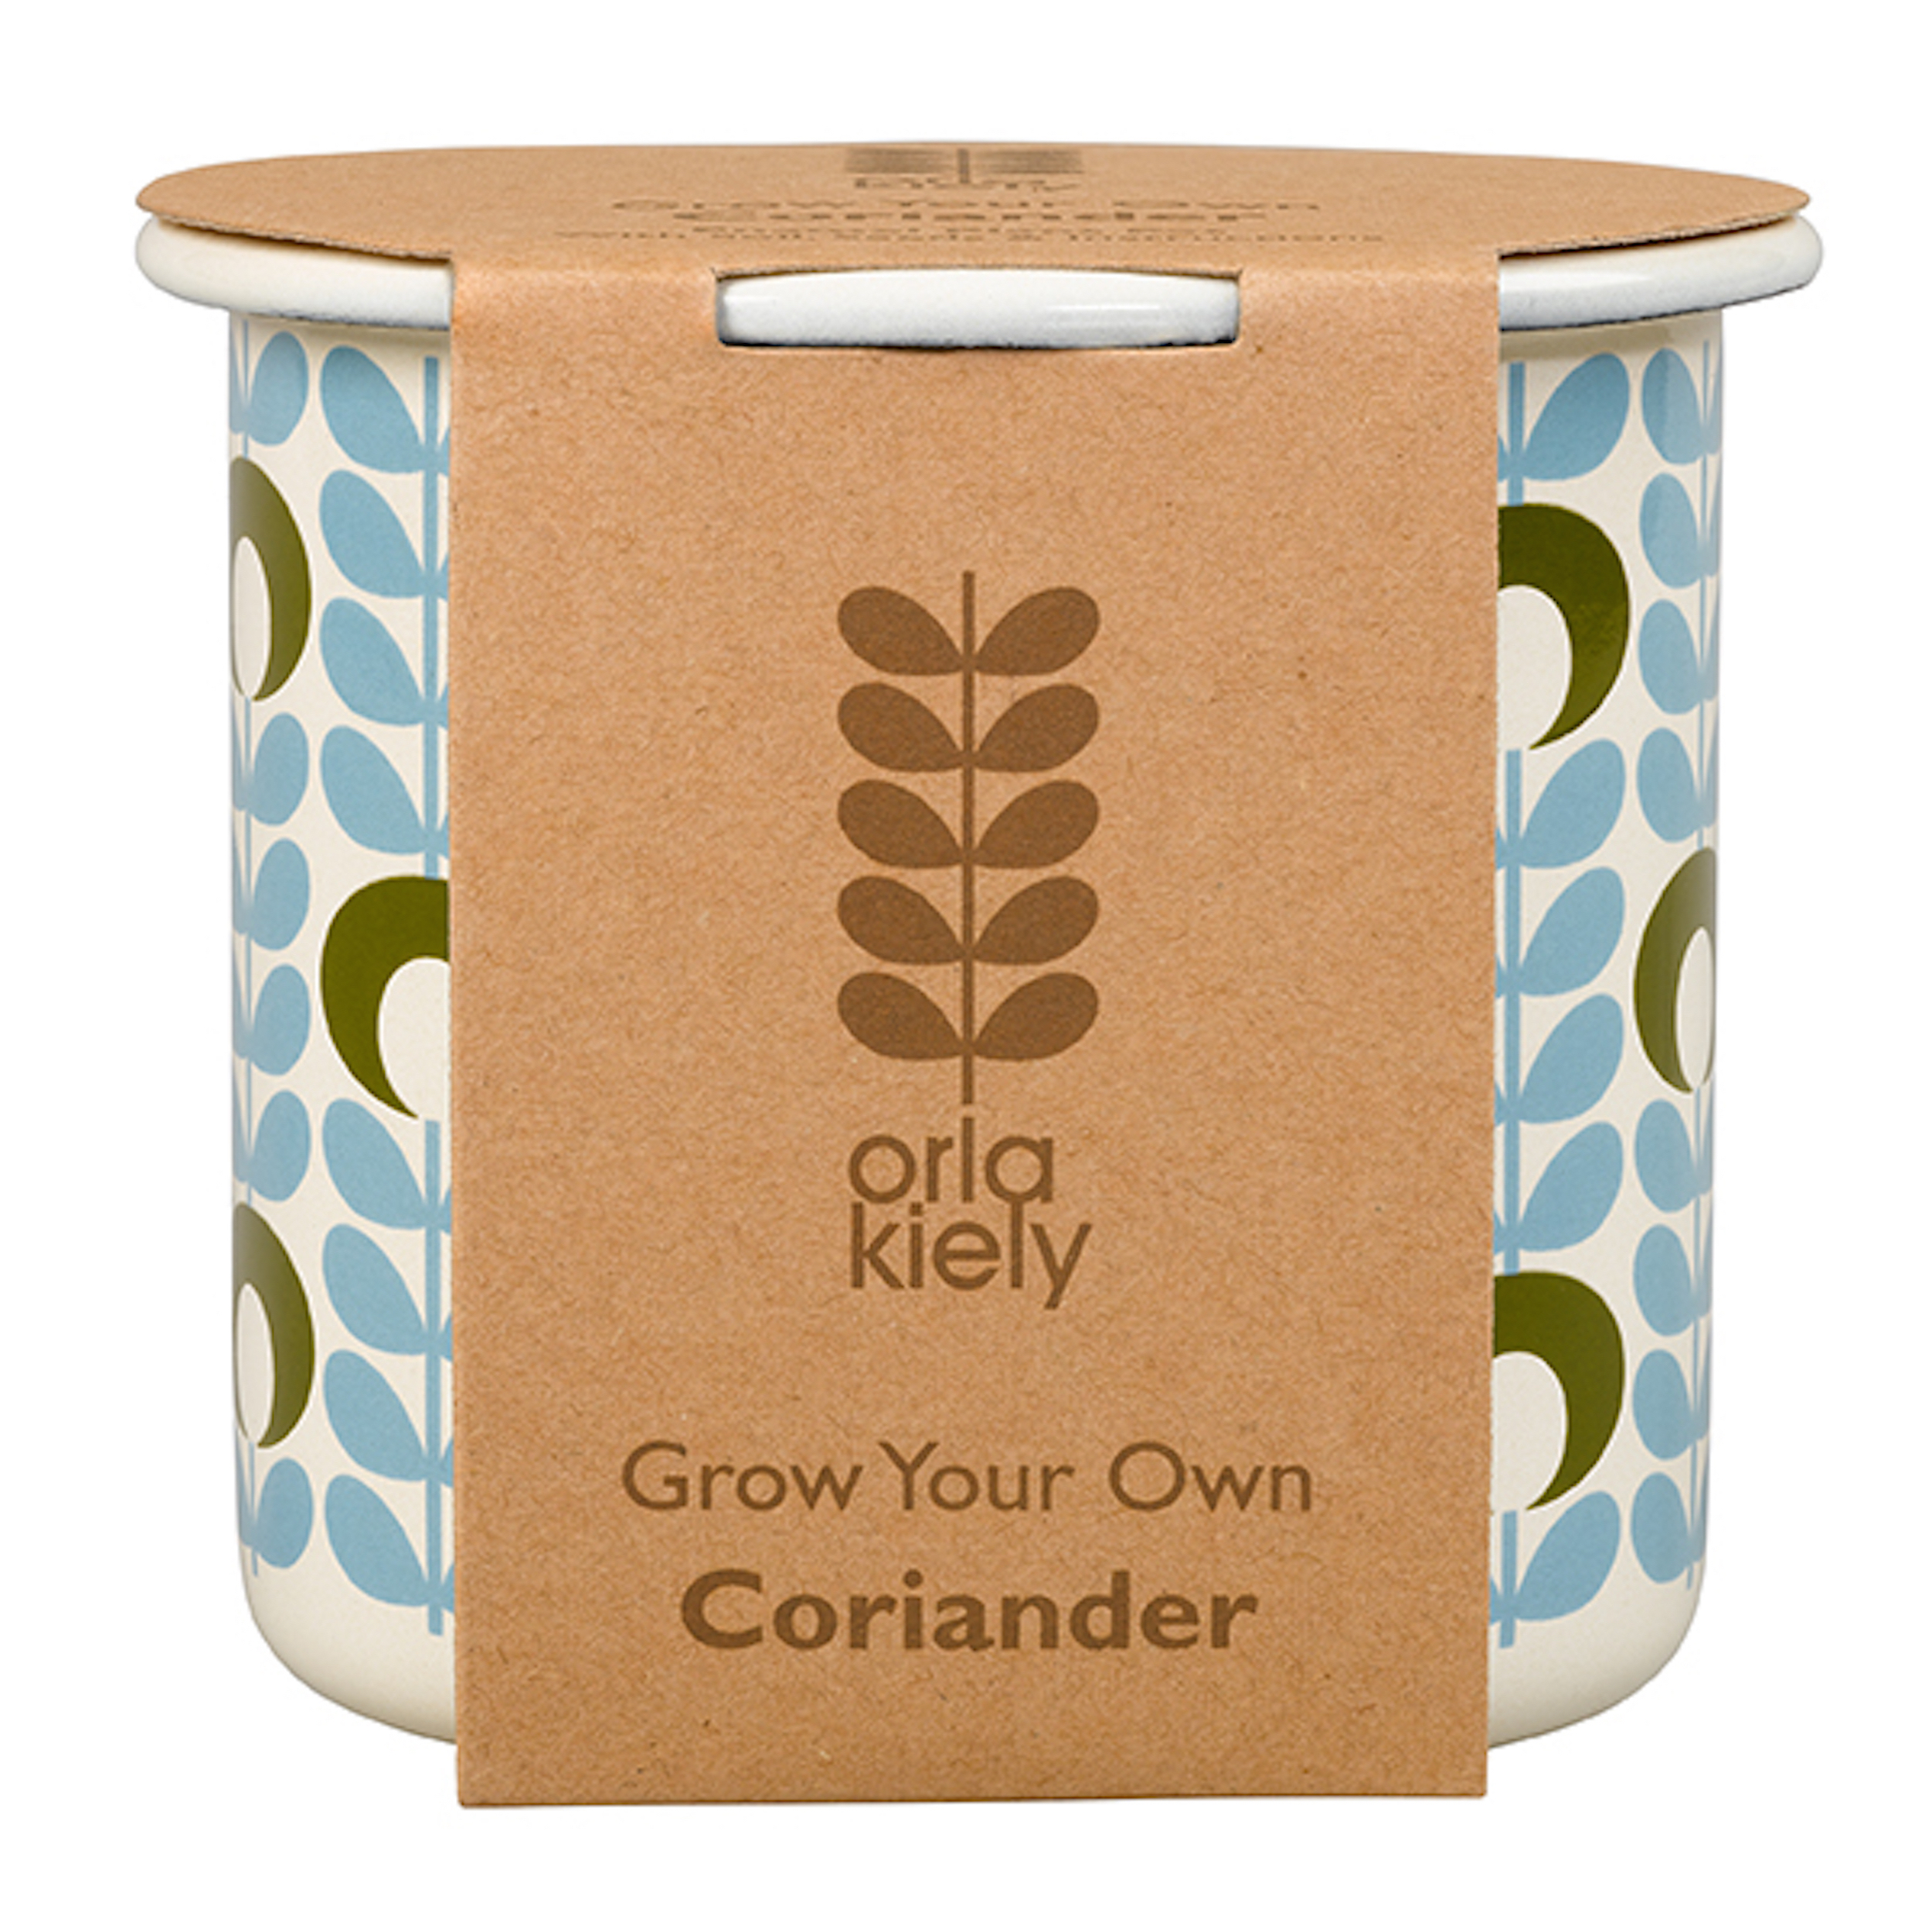 Grow Your Own Coriander